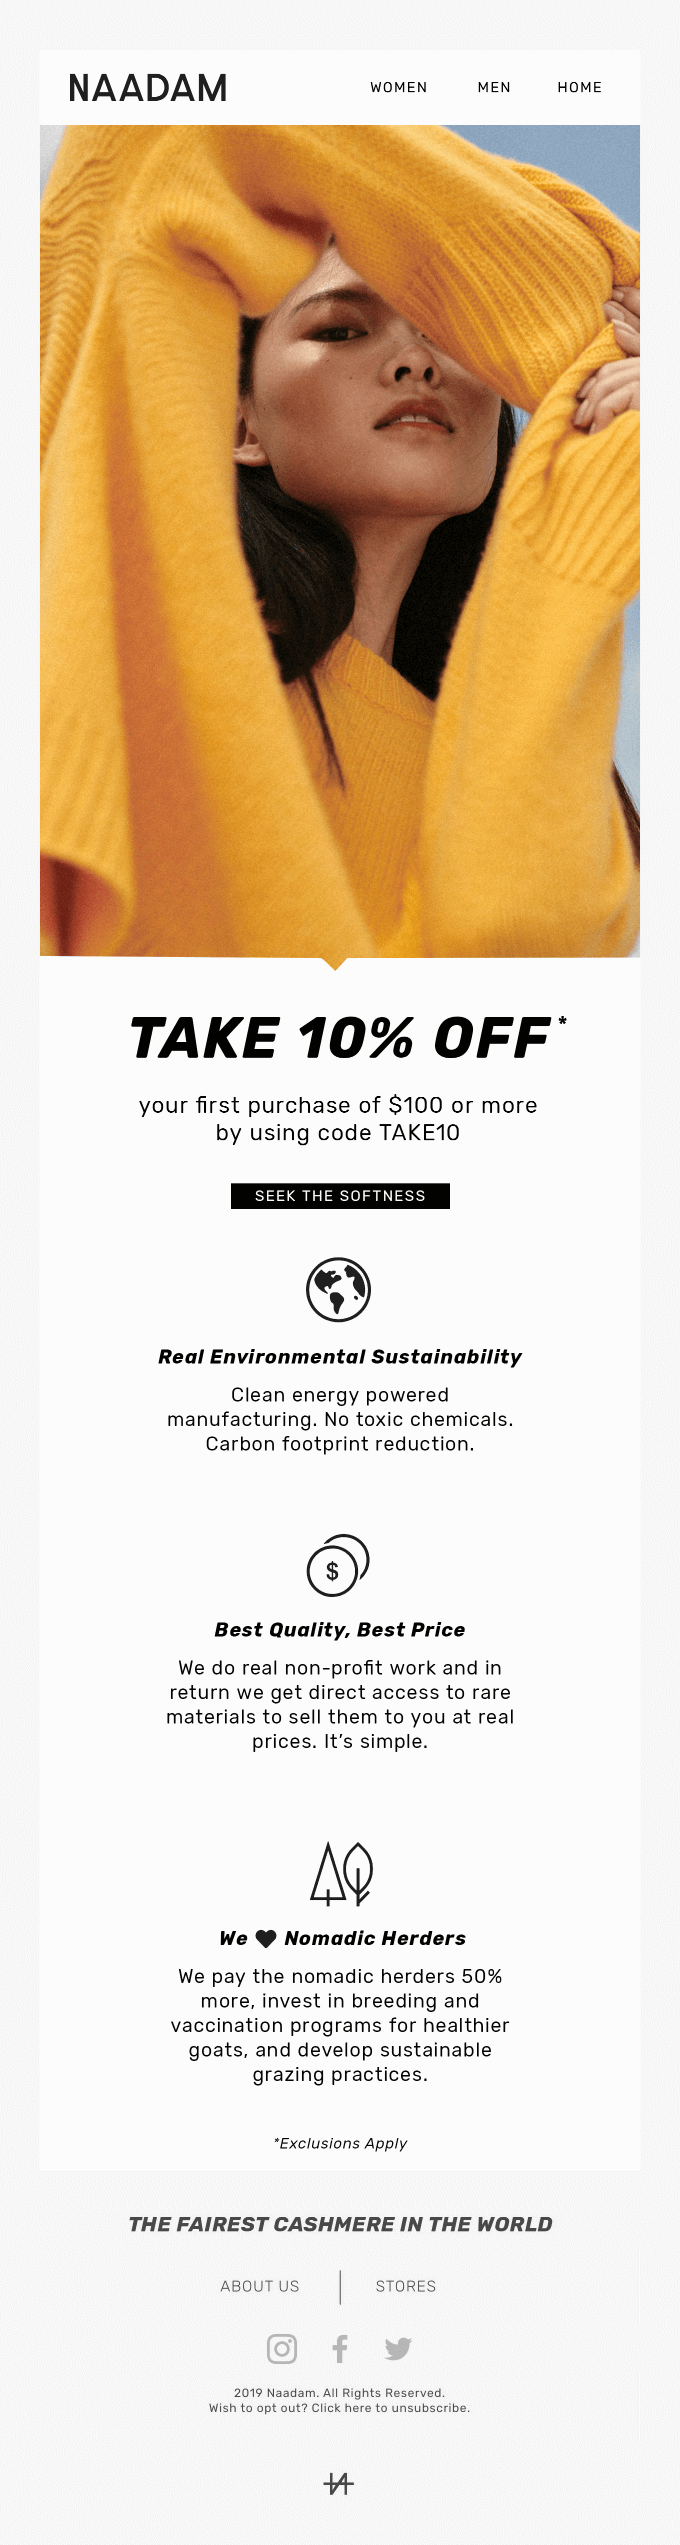 Welcome to the herd. Your 10% off code is inside